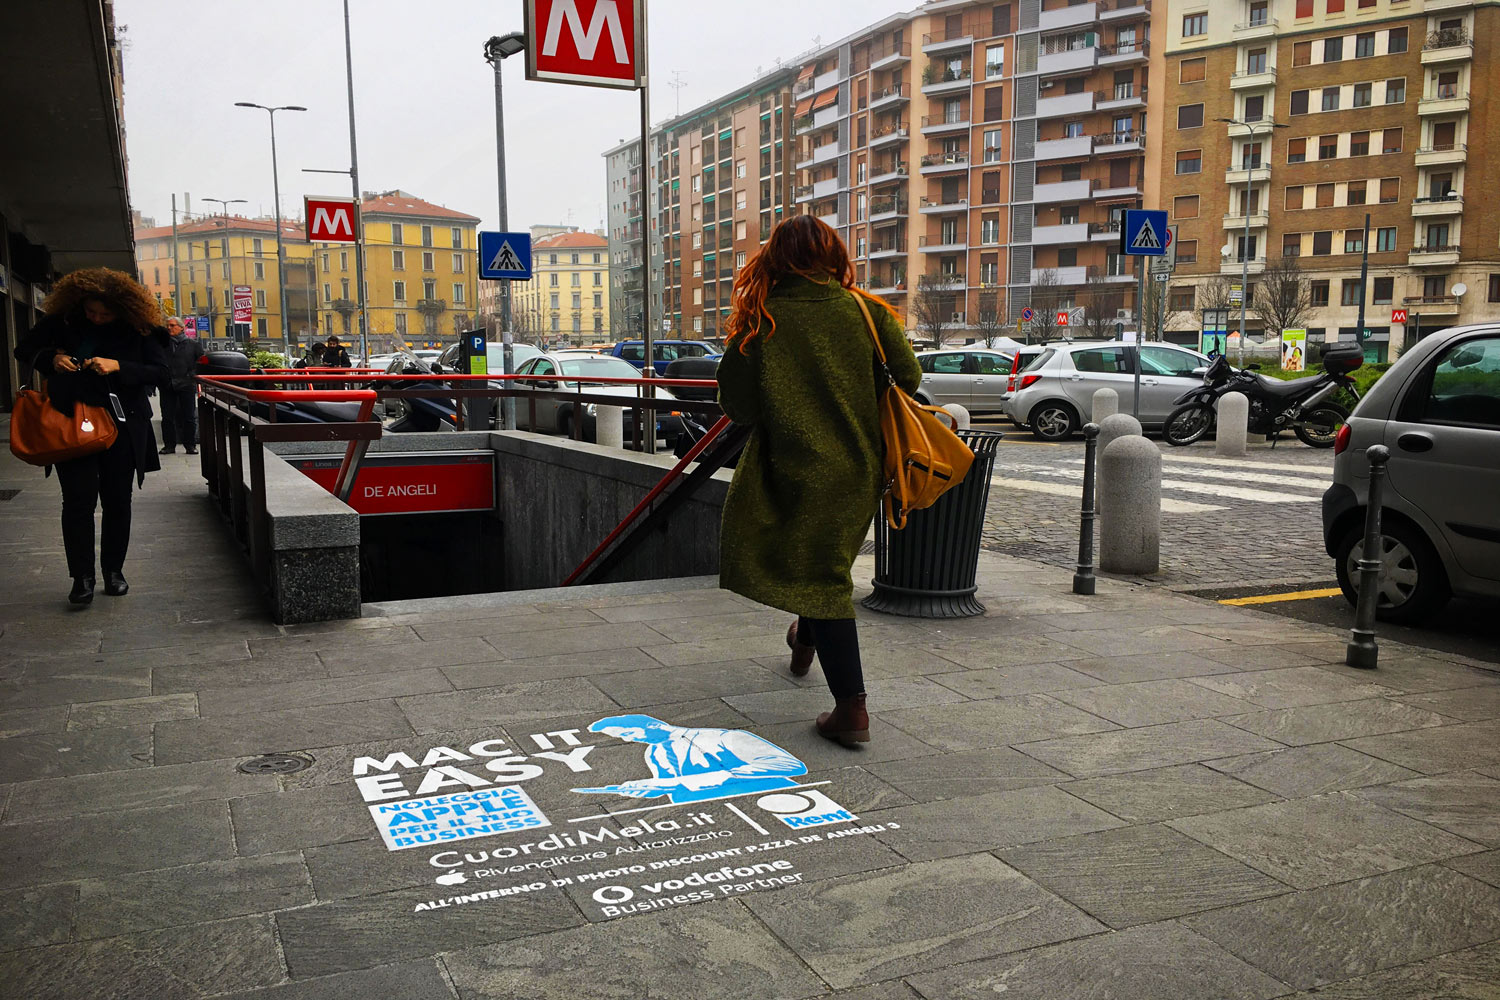 outdoor advertising cuordimela